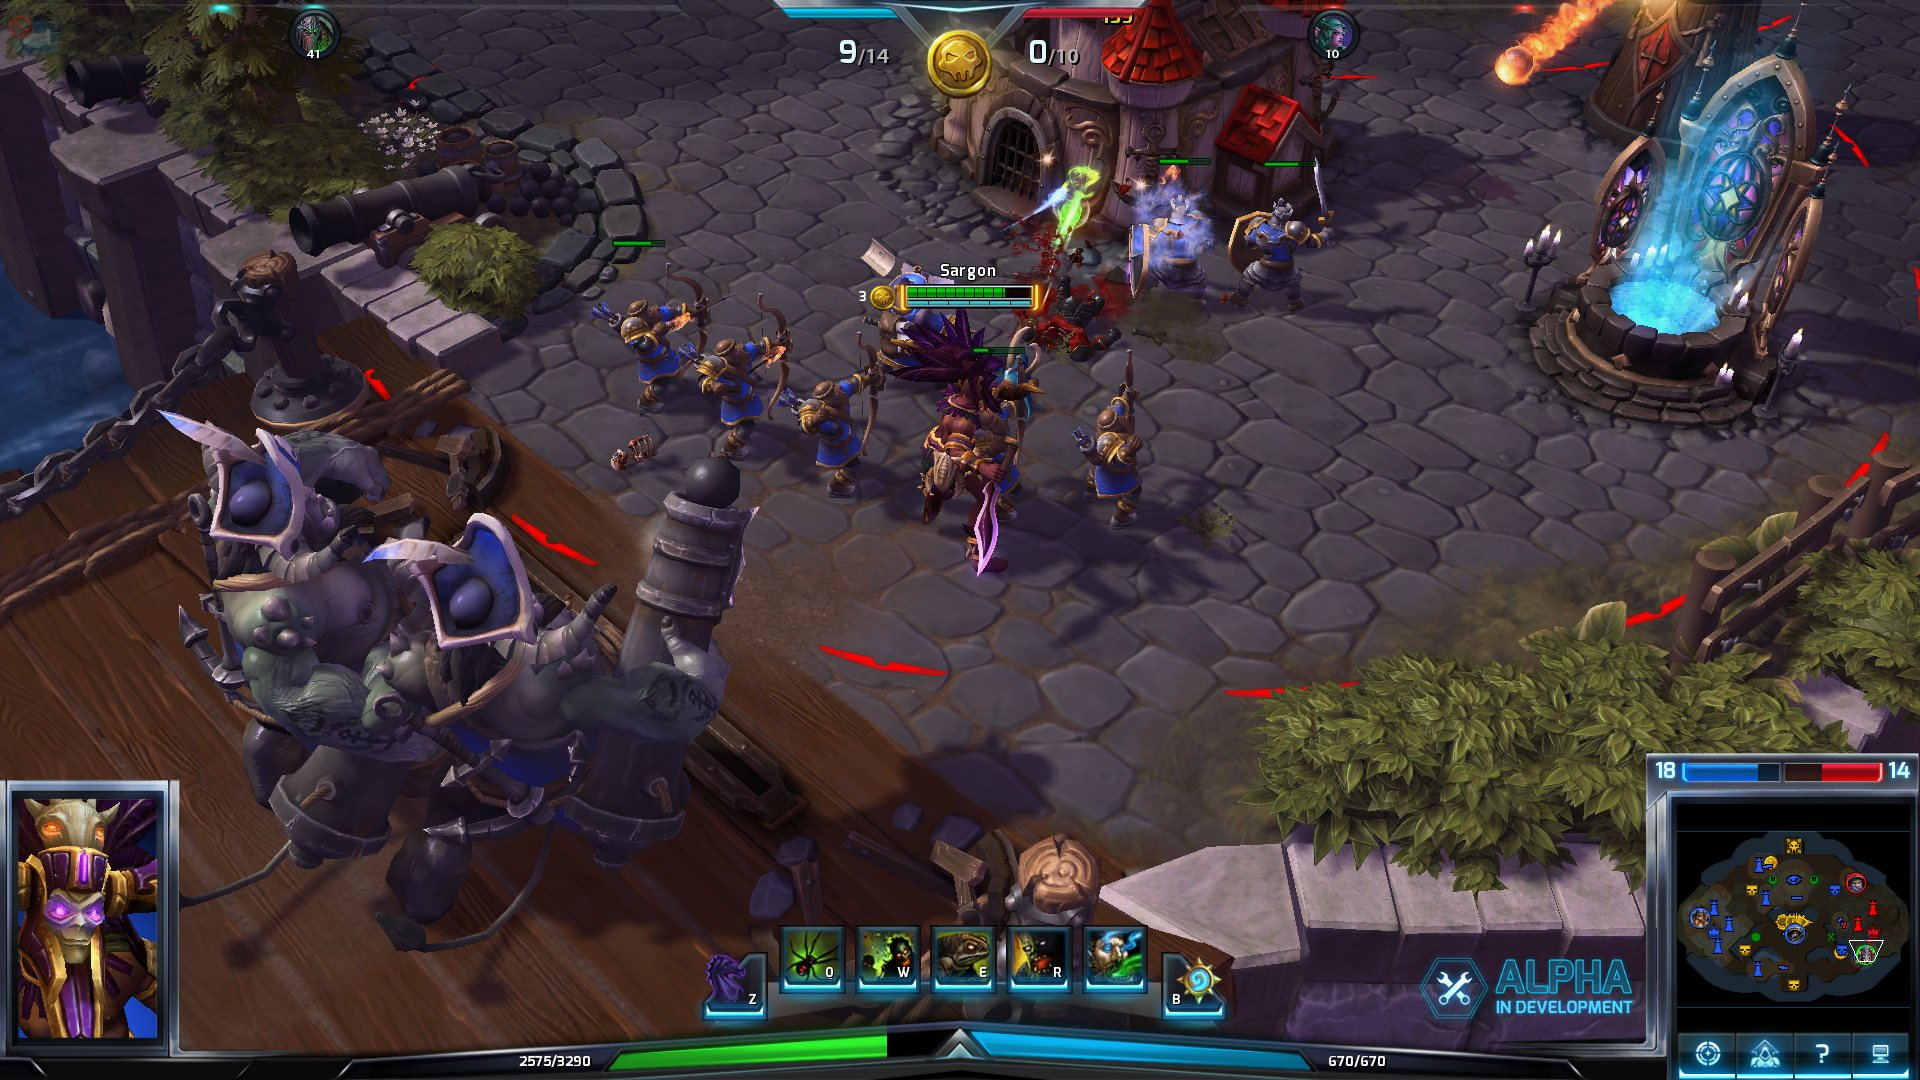 Libros De World Of Warcraft Heroes Of The Storm Así Es El Poderoso Moba De Blizzard Pc